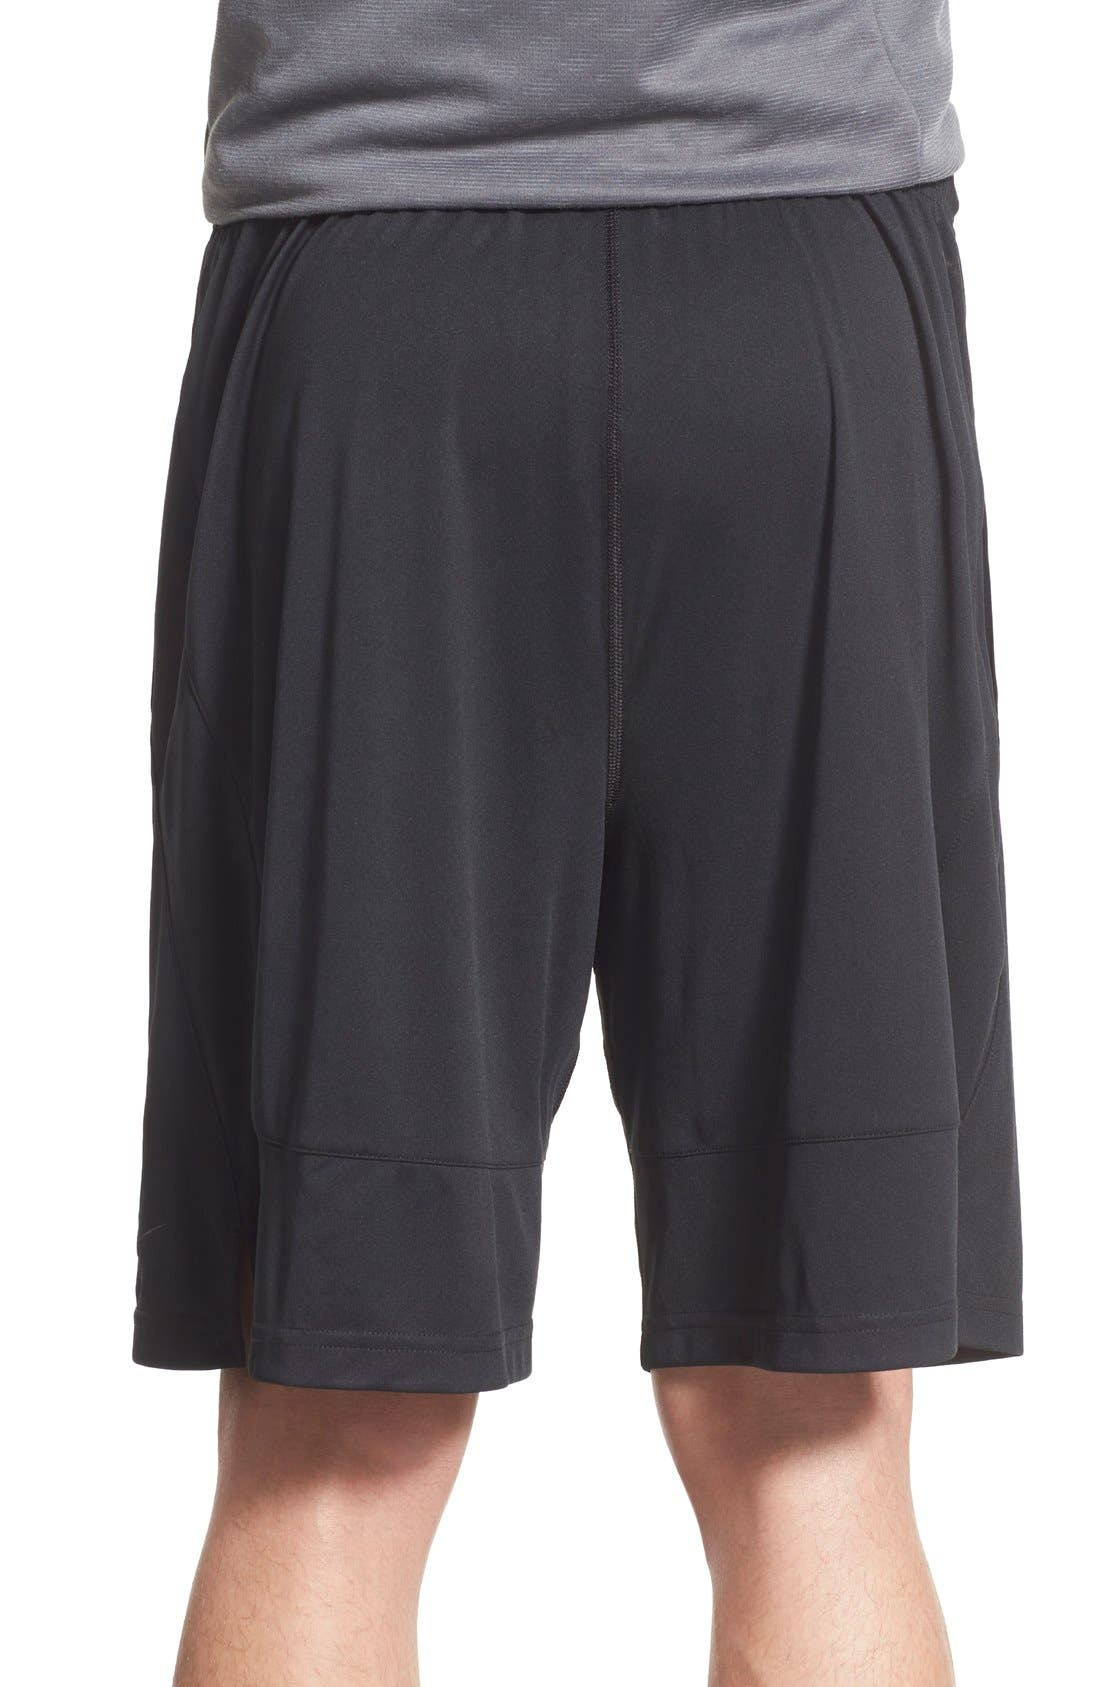 'Fly' Dri-FIT Training Shorts,                             Alternate thumbnail 75, color,